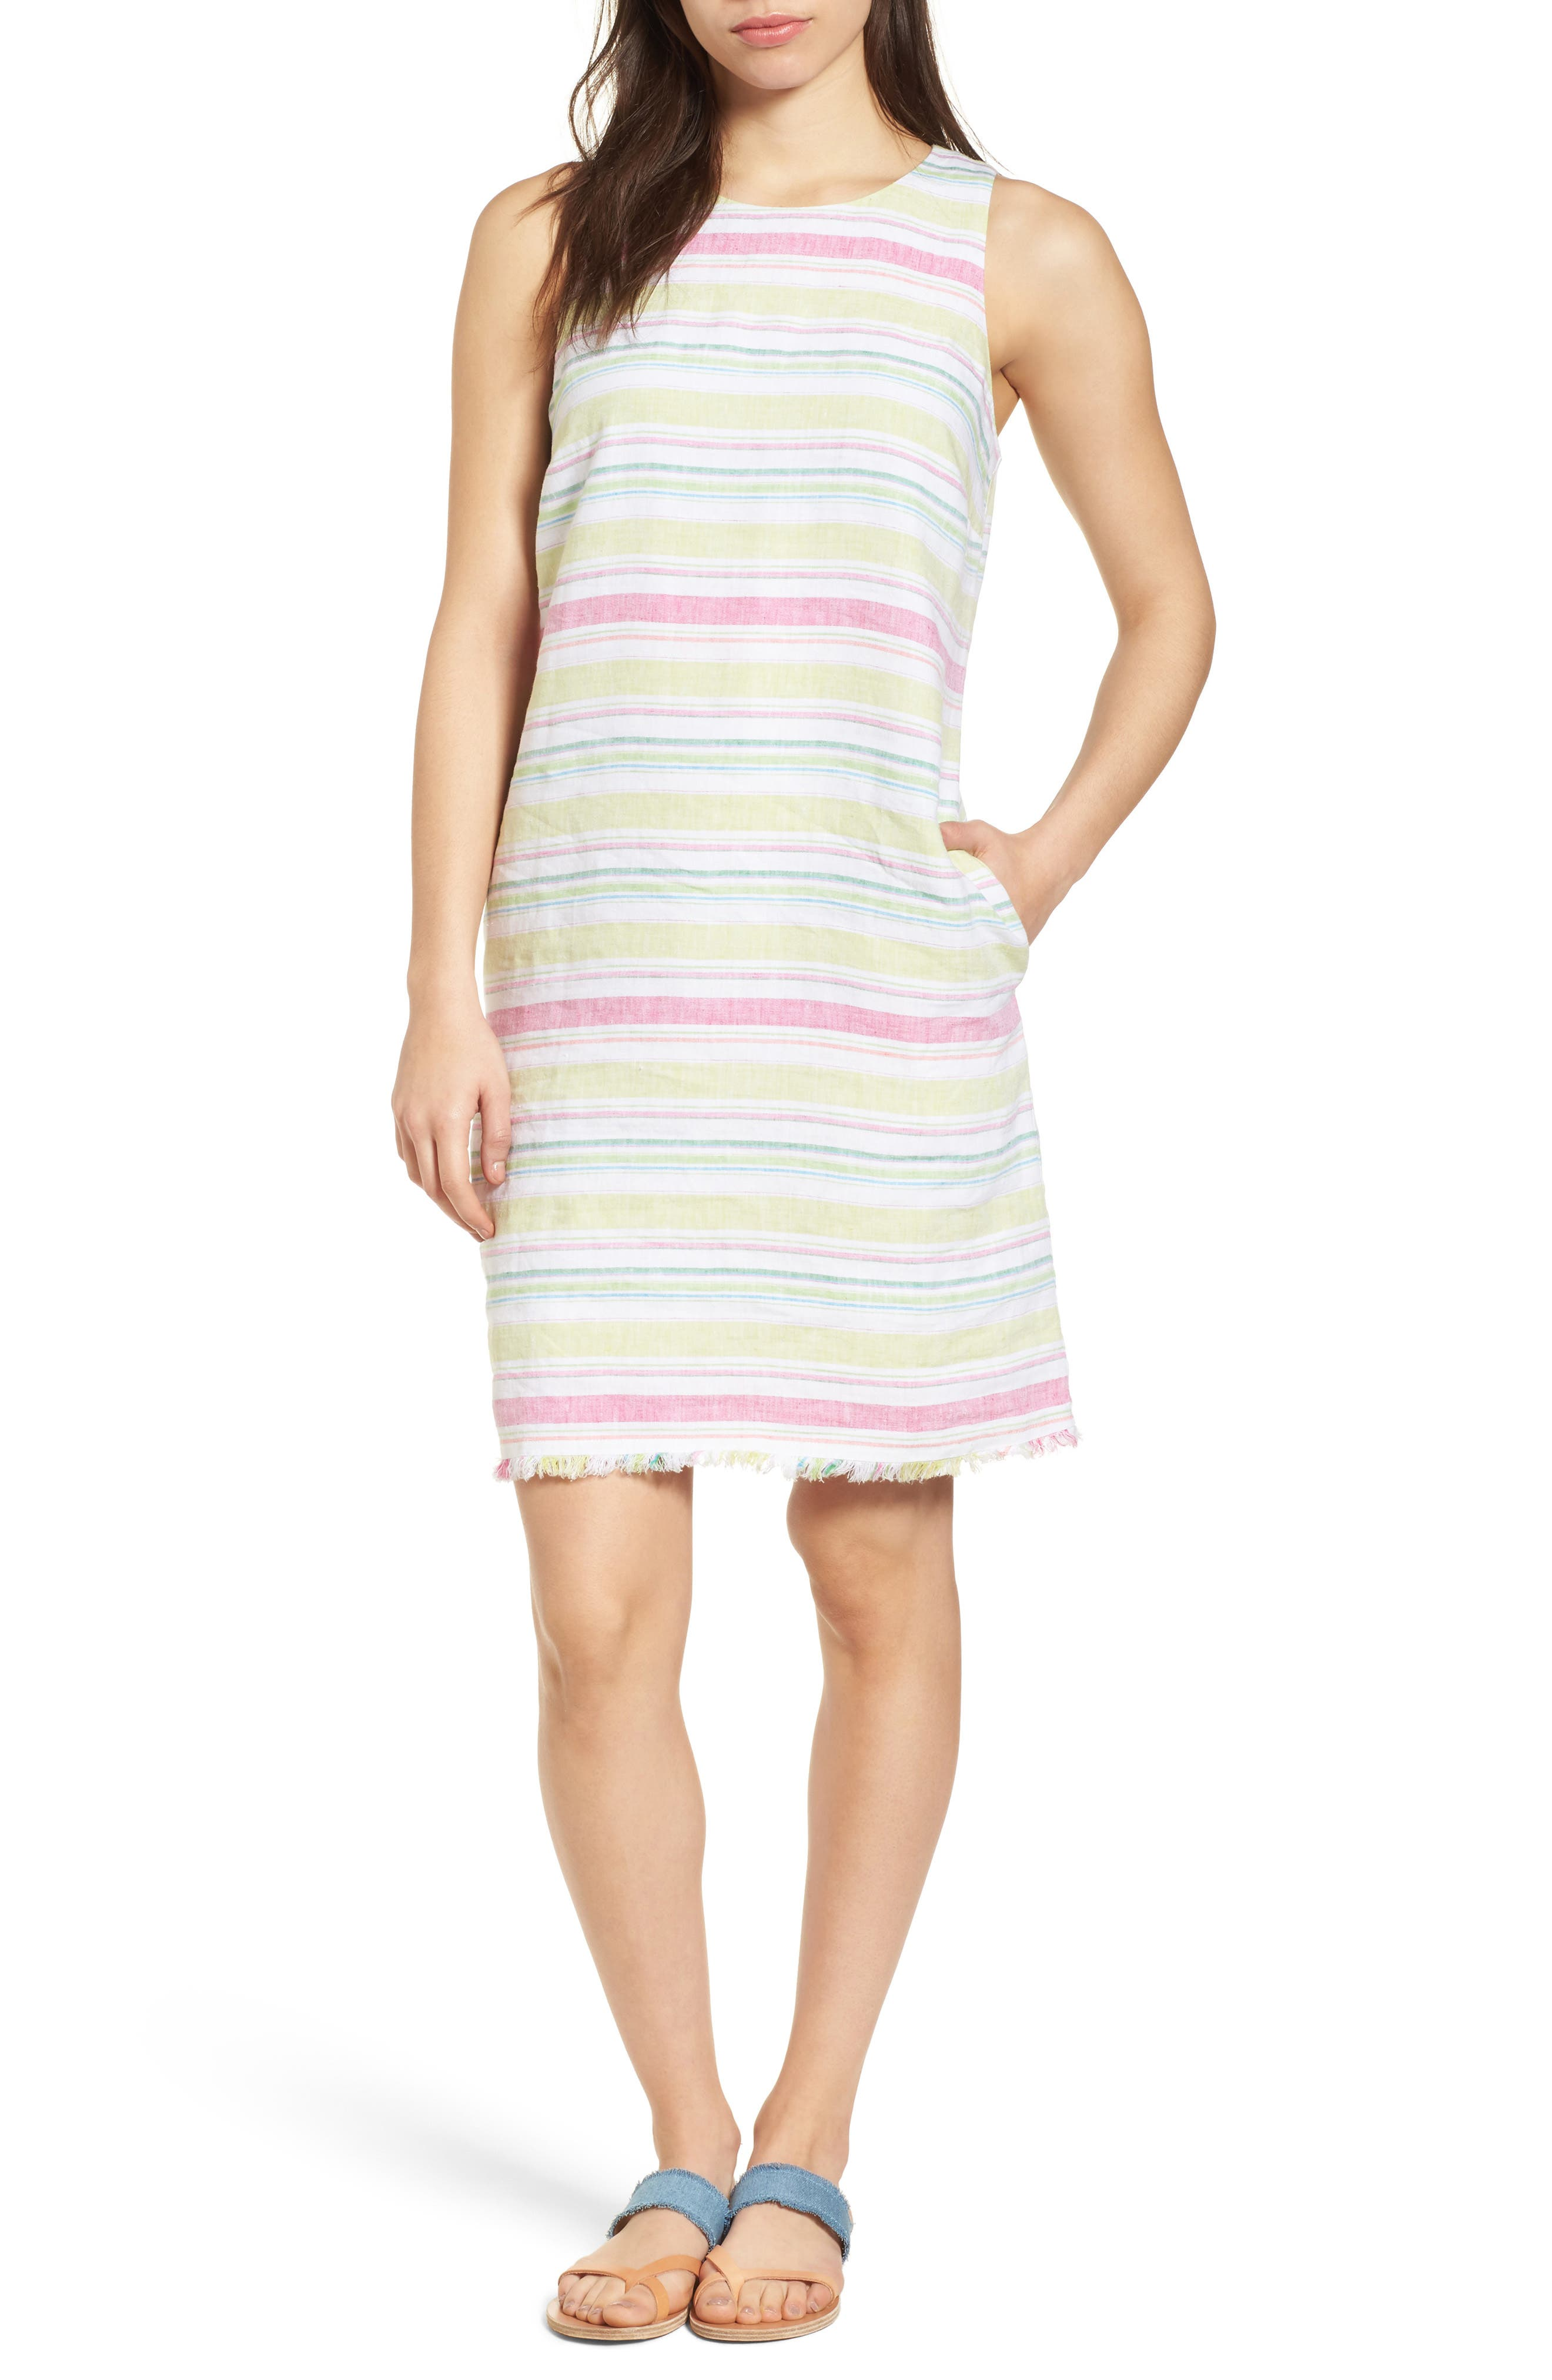 TOMMY BAHAMA Tulum Stripe Shift Dress, Main, color, 700